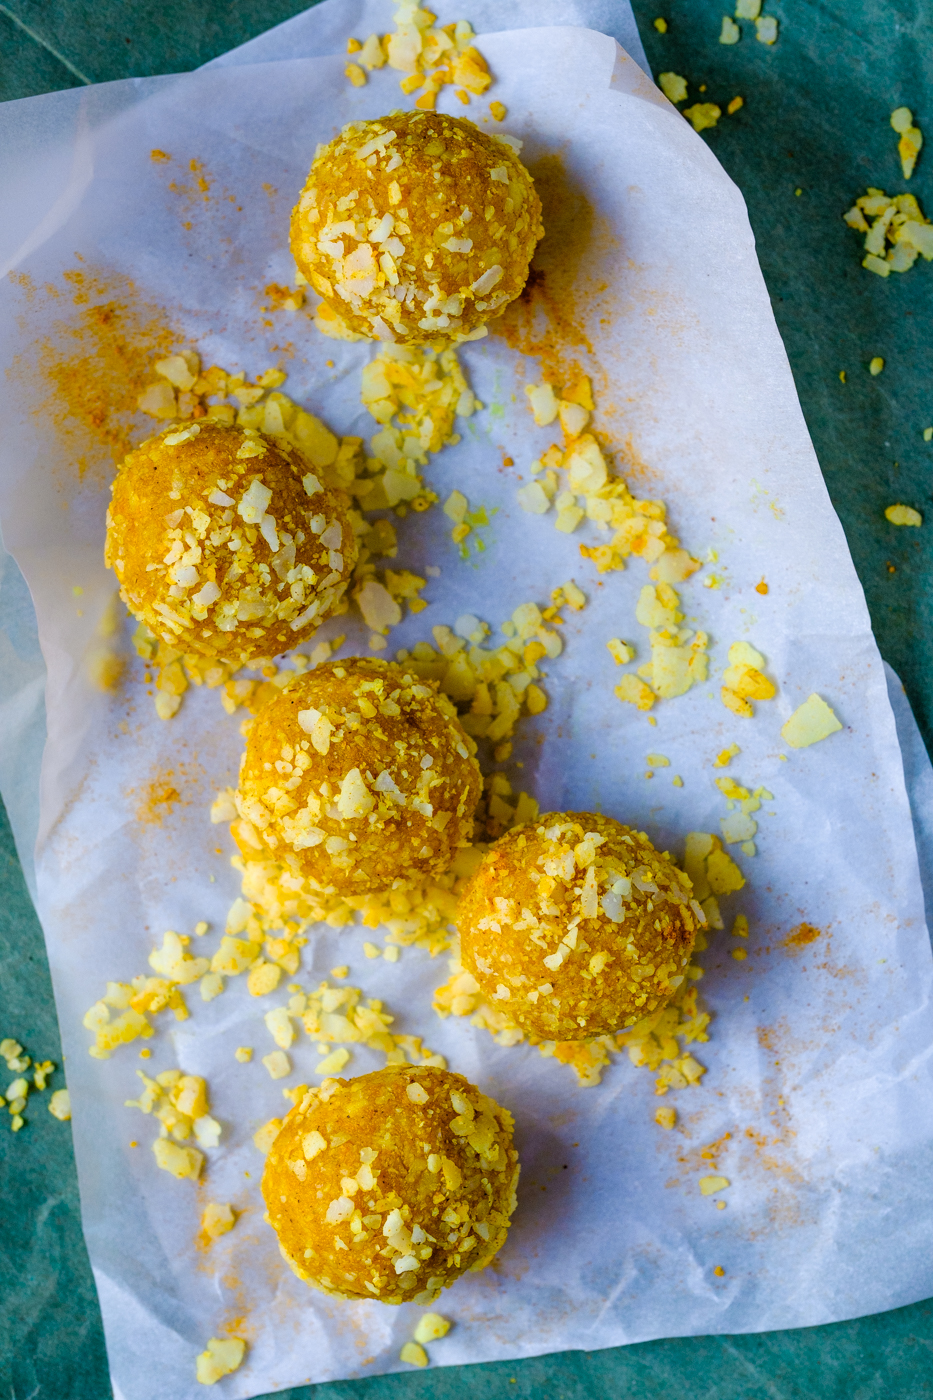 Lectin-Free Energy Bites with Coconut, Macadamia and Turmeric. They look very yellow and yummy.